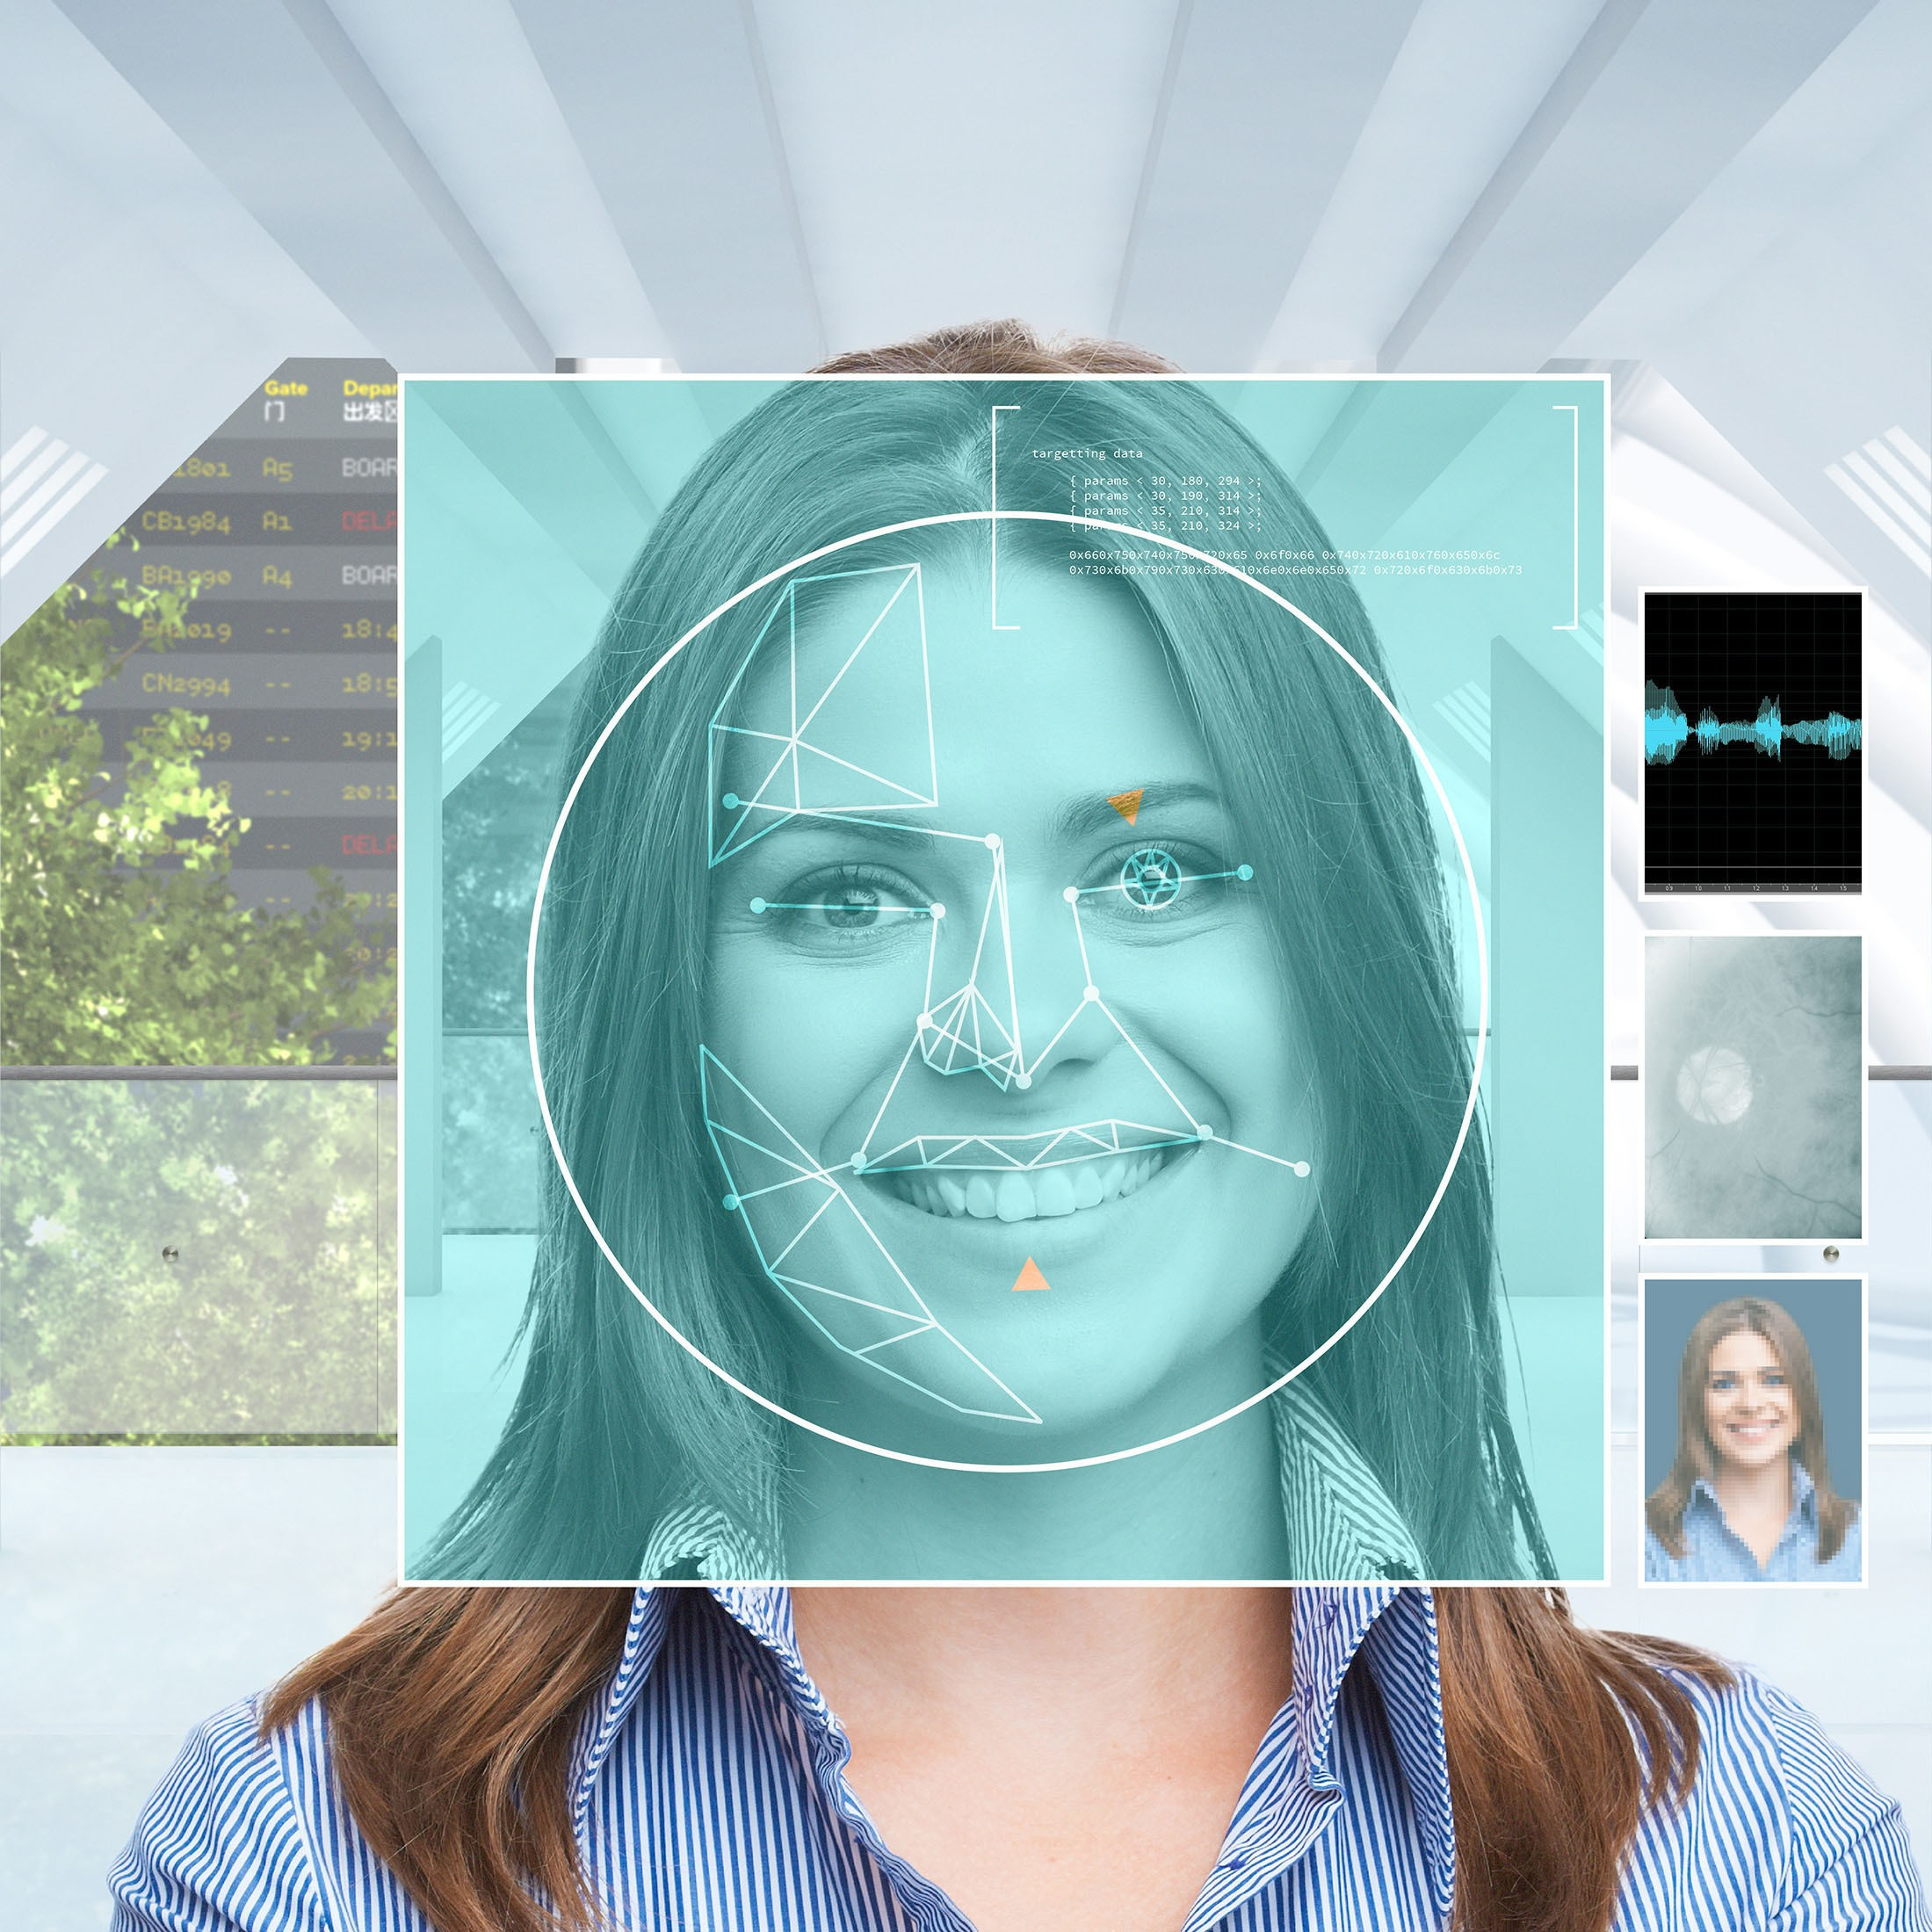 Identical twins facial recognition